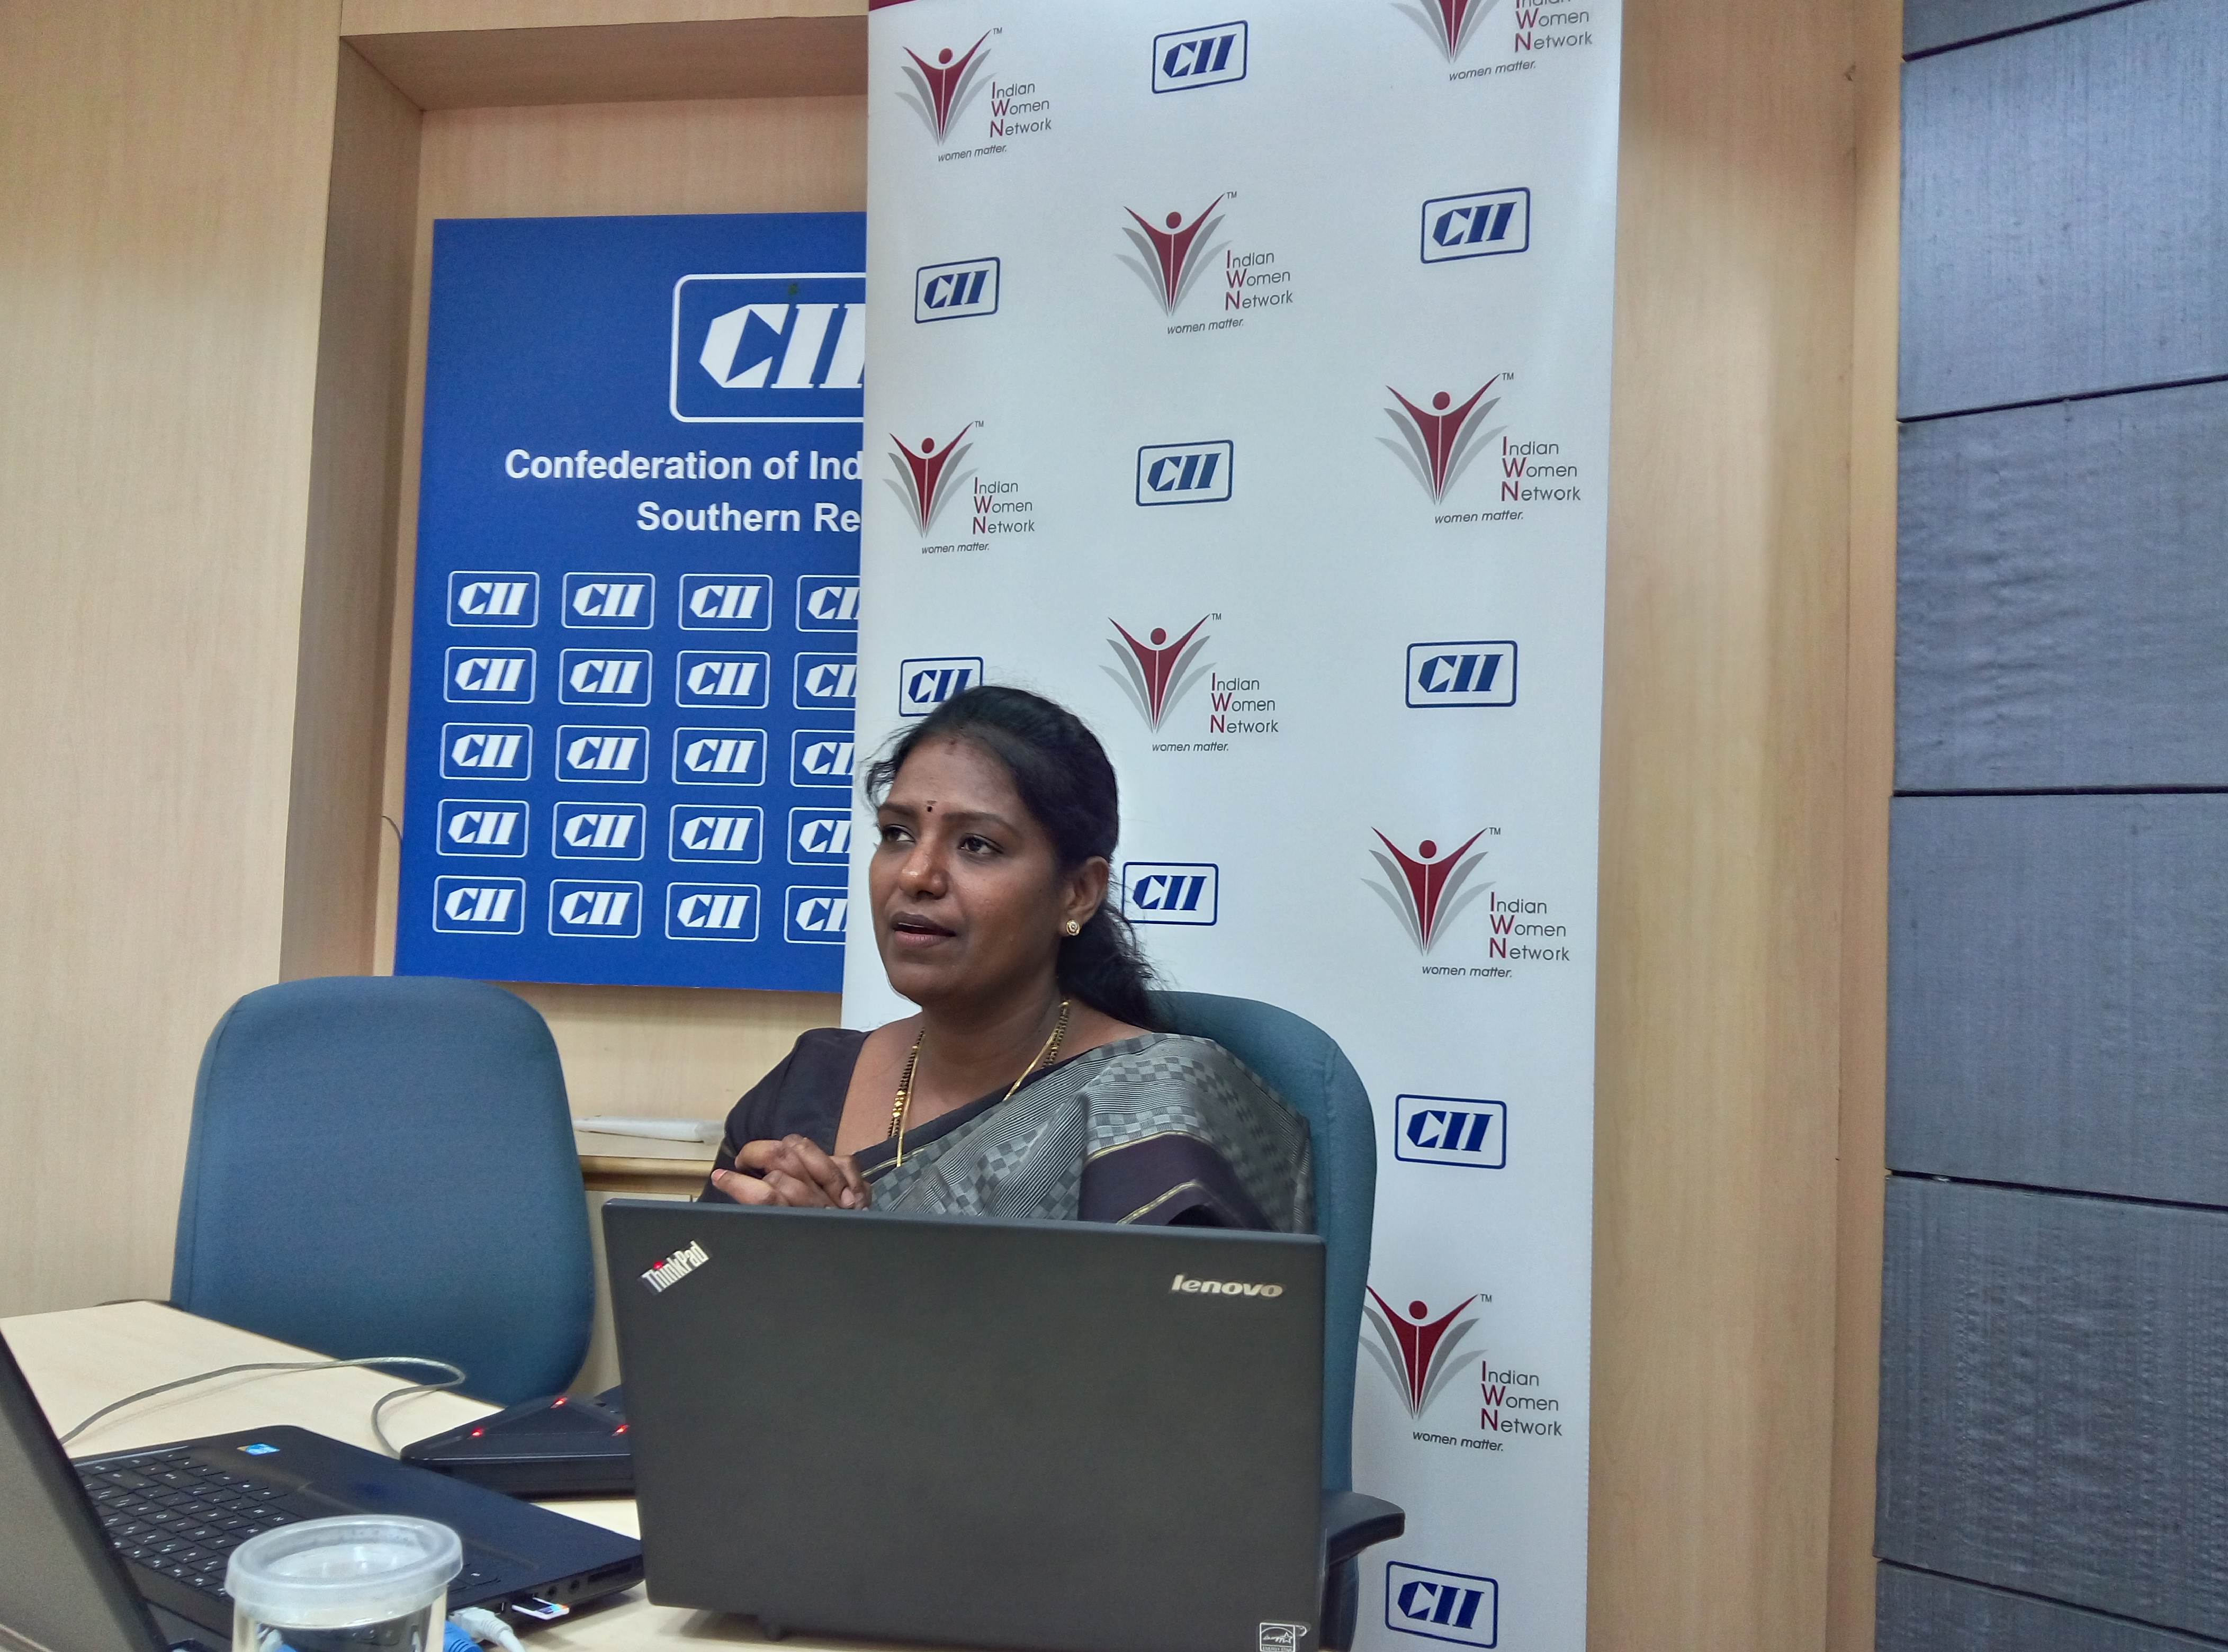 Online Session on Life Stage Financial Planning for women